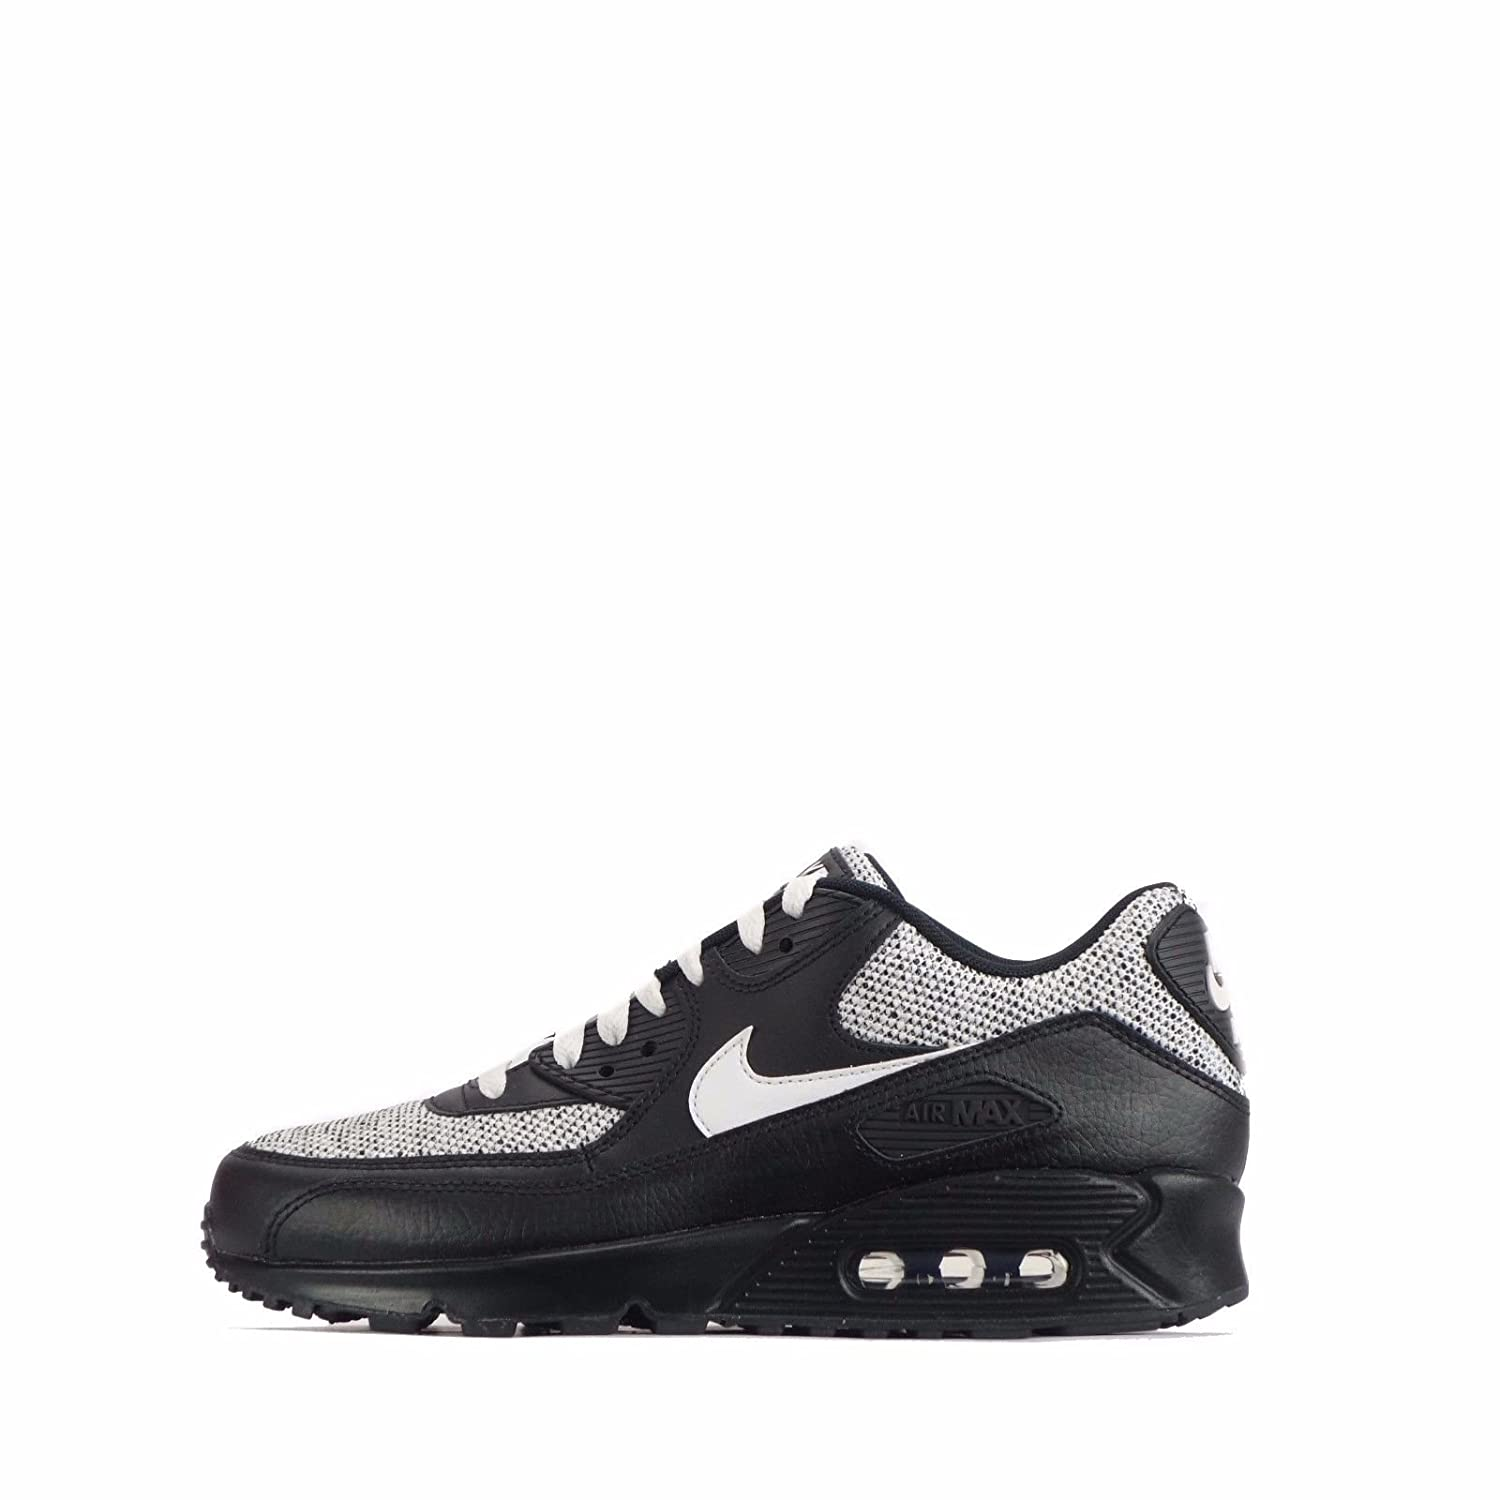 NIKE Men's Air Max 90 Essential Running Shoe B072QCKSGT 7.5 D(M) US|Black White 079